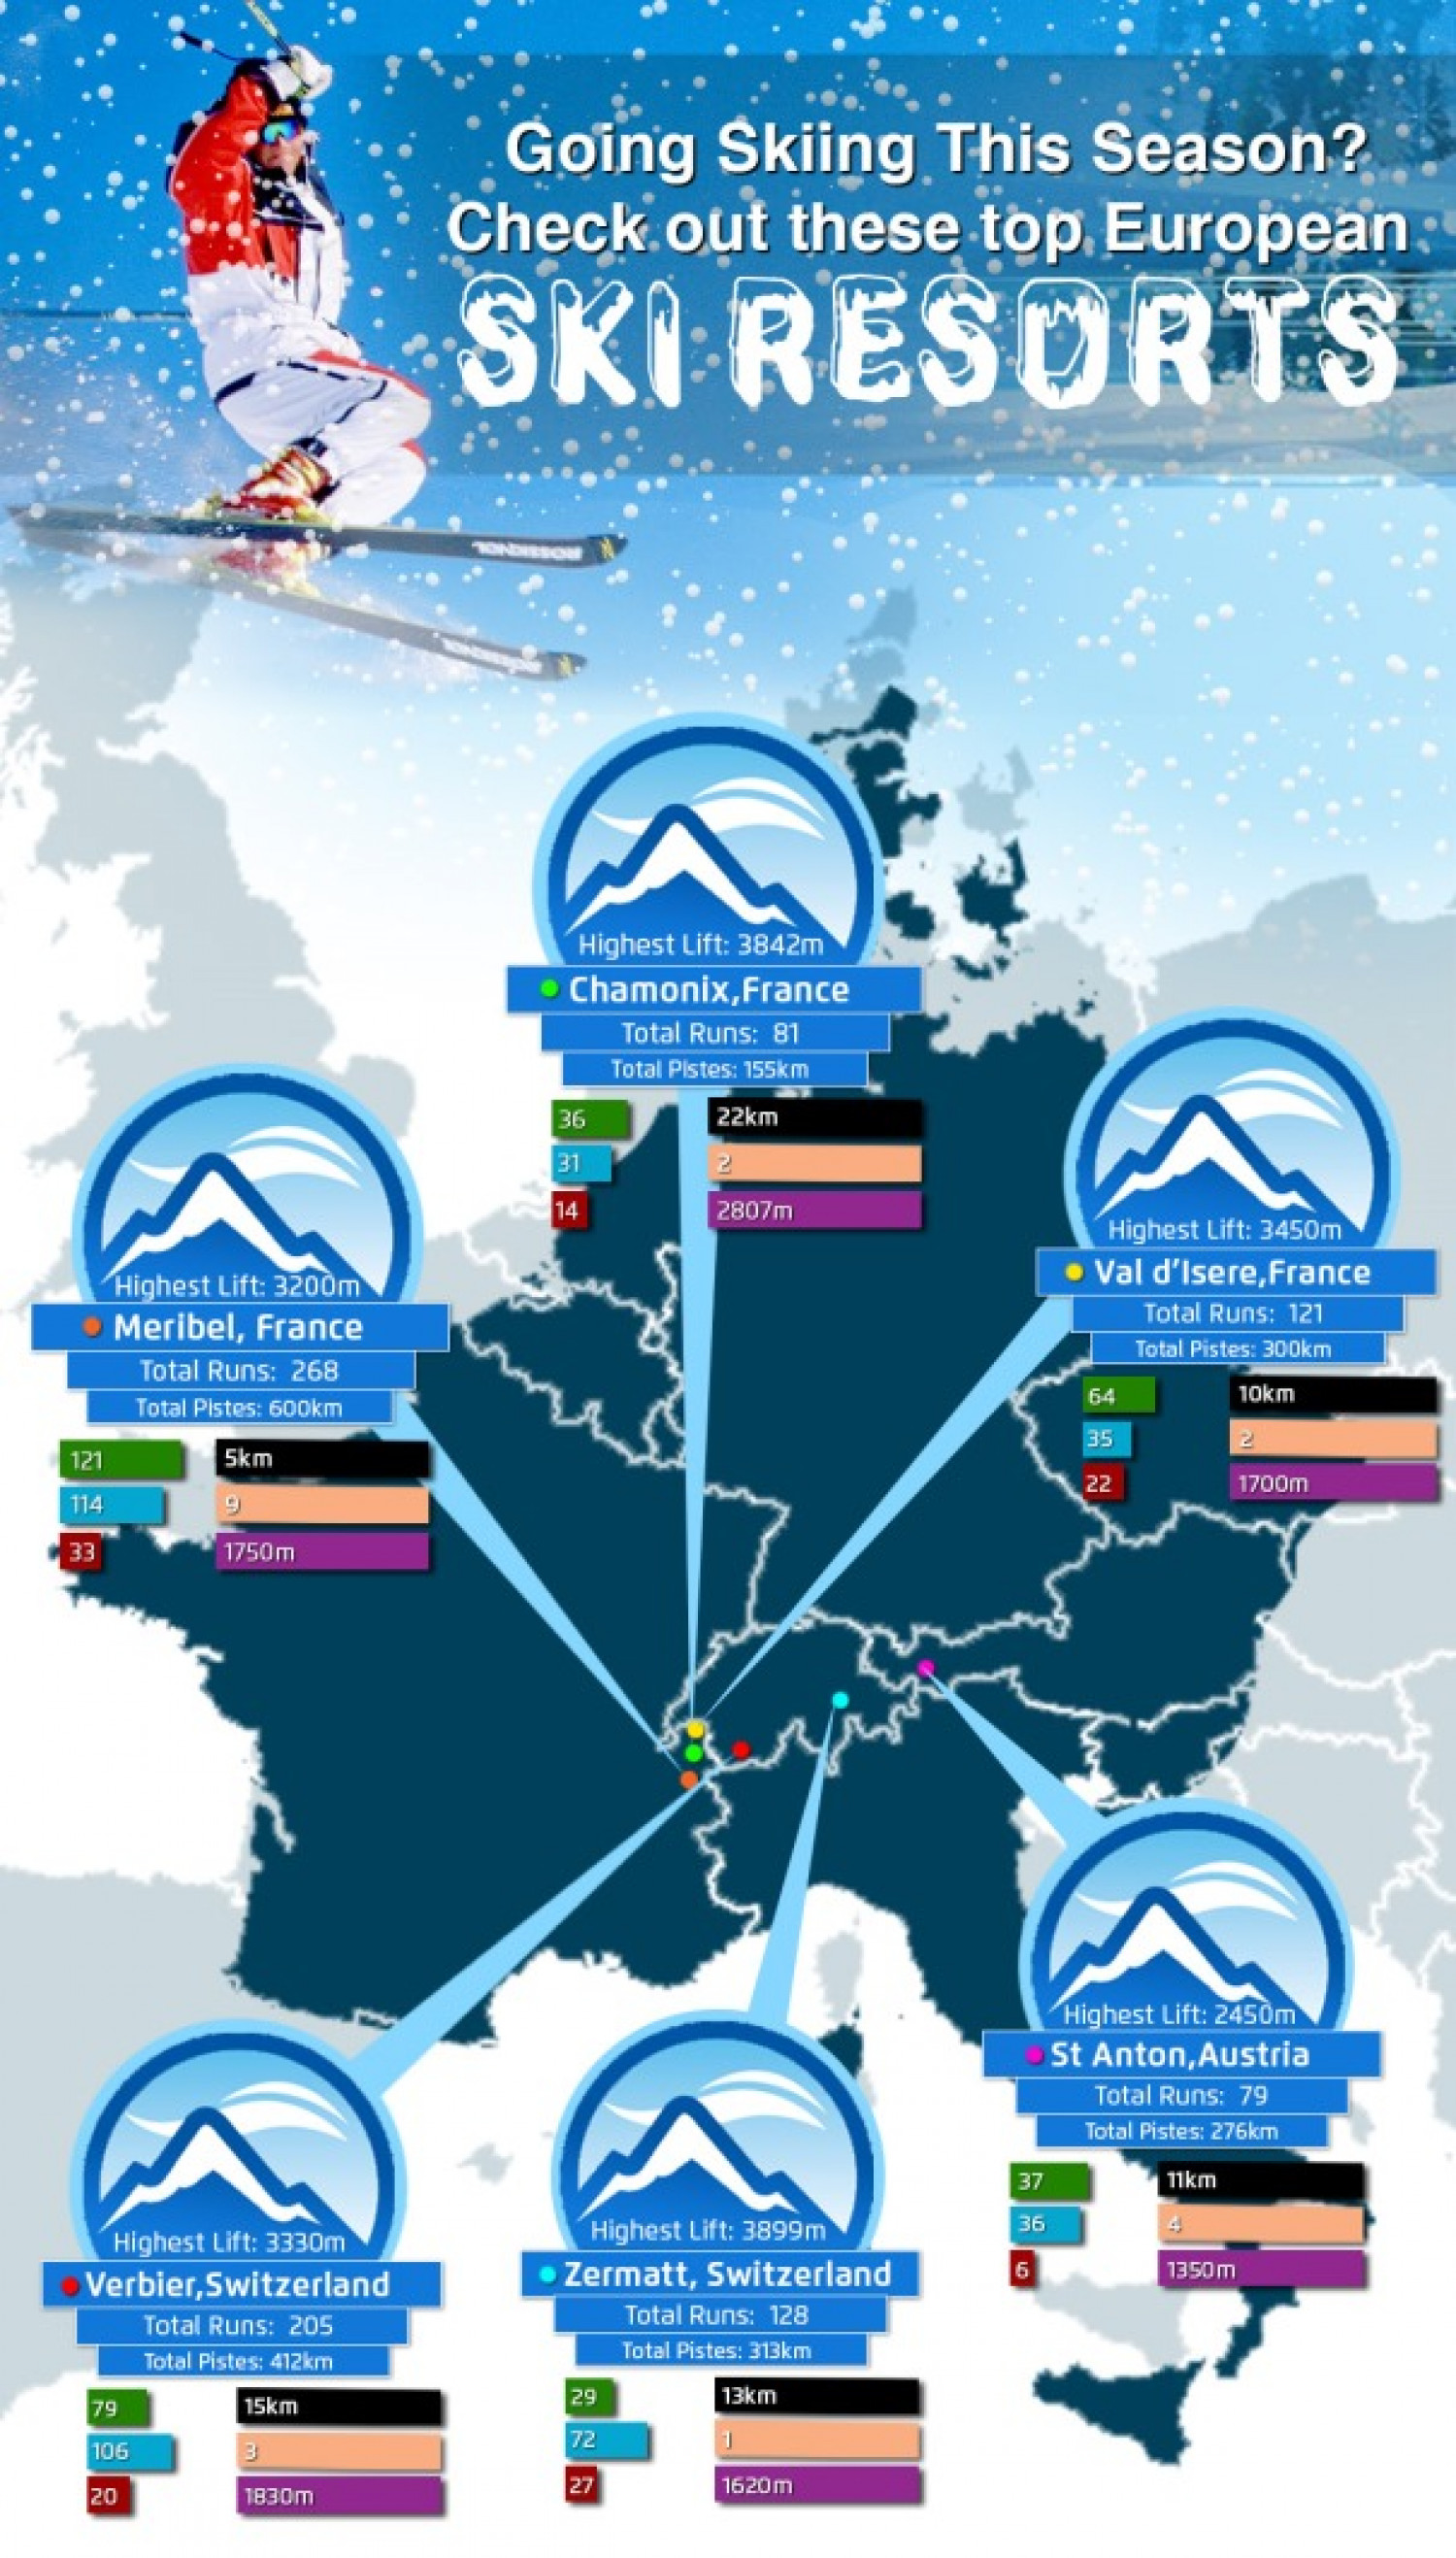 Going Skiing This Season?Check out these top SKI RESORTS Infographic